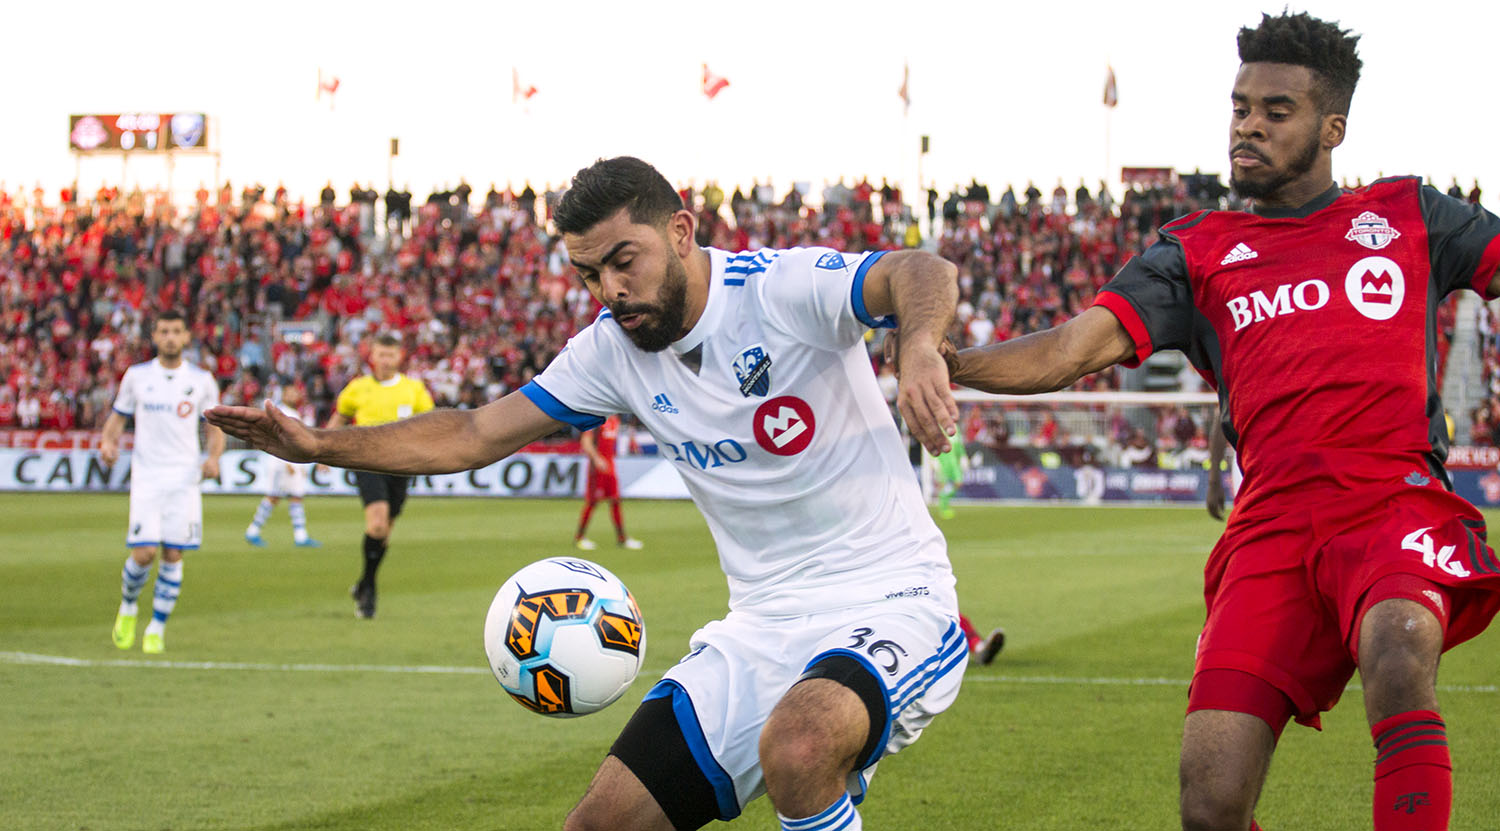 Raheem Edwards and Victor Cabrera go for the ball as the sun sets at BMO FIeld in 2017.Image by Dennis Marciniak of denMAR Media.